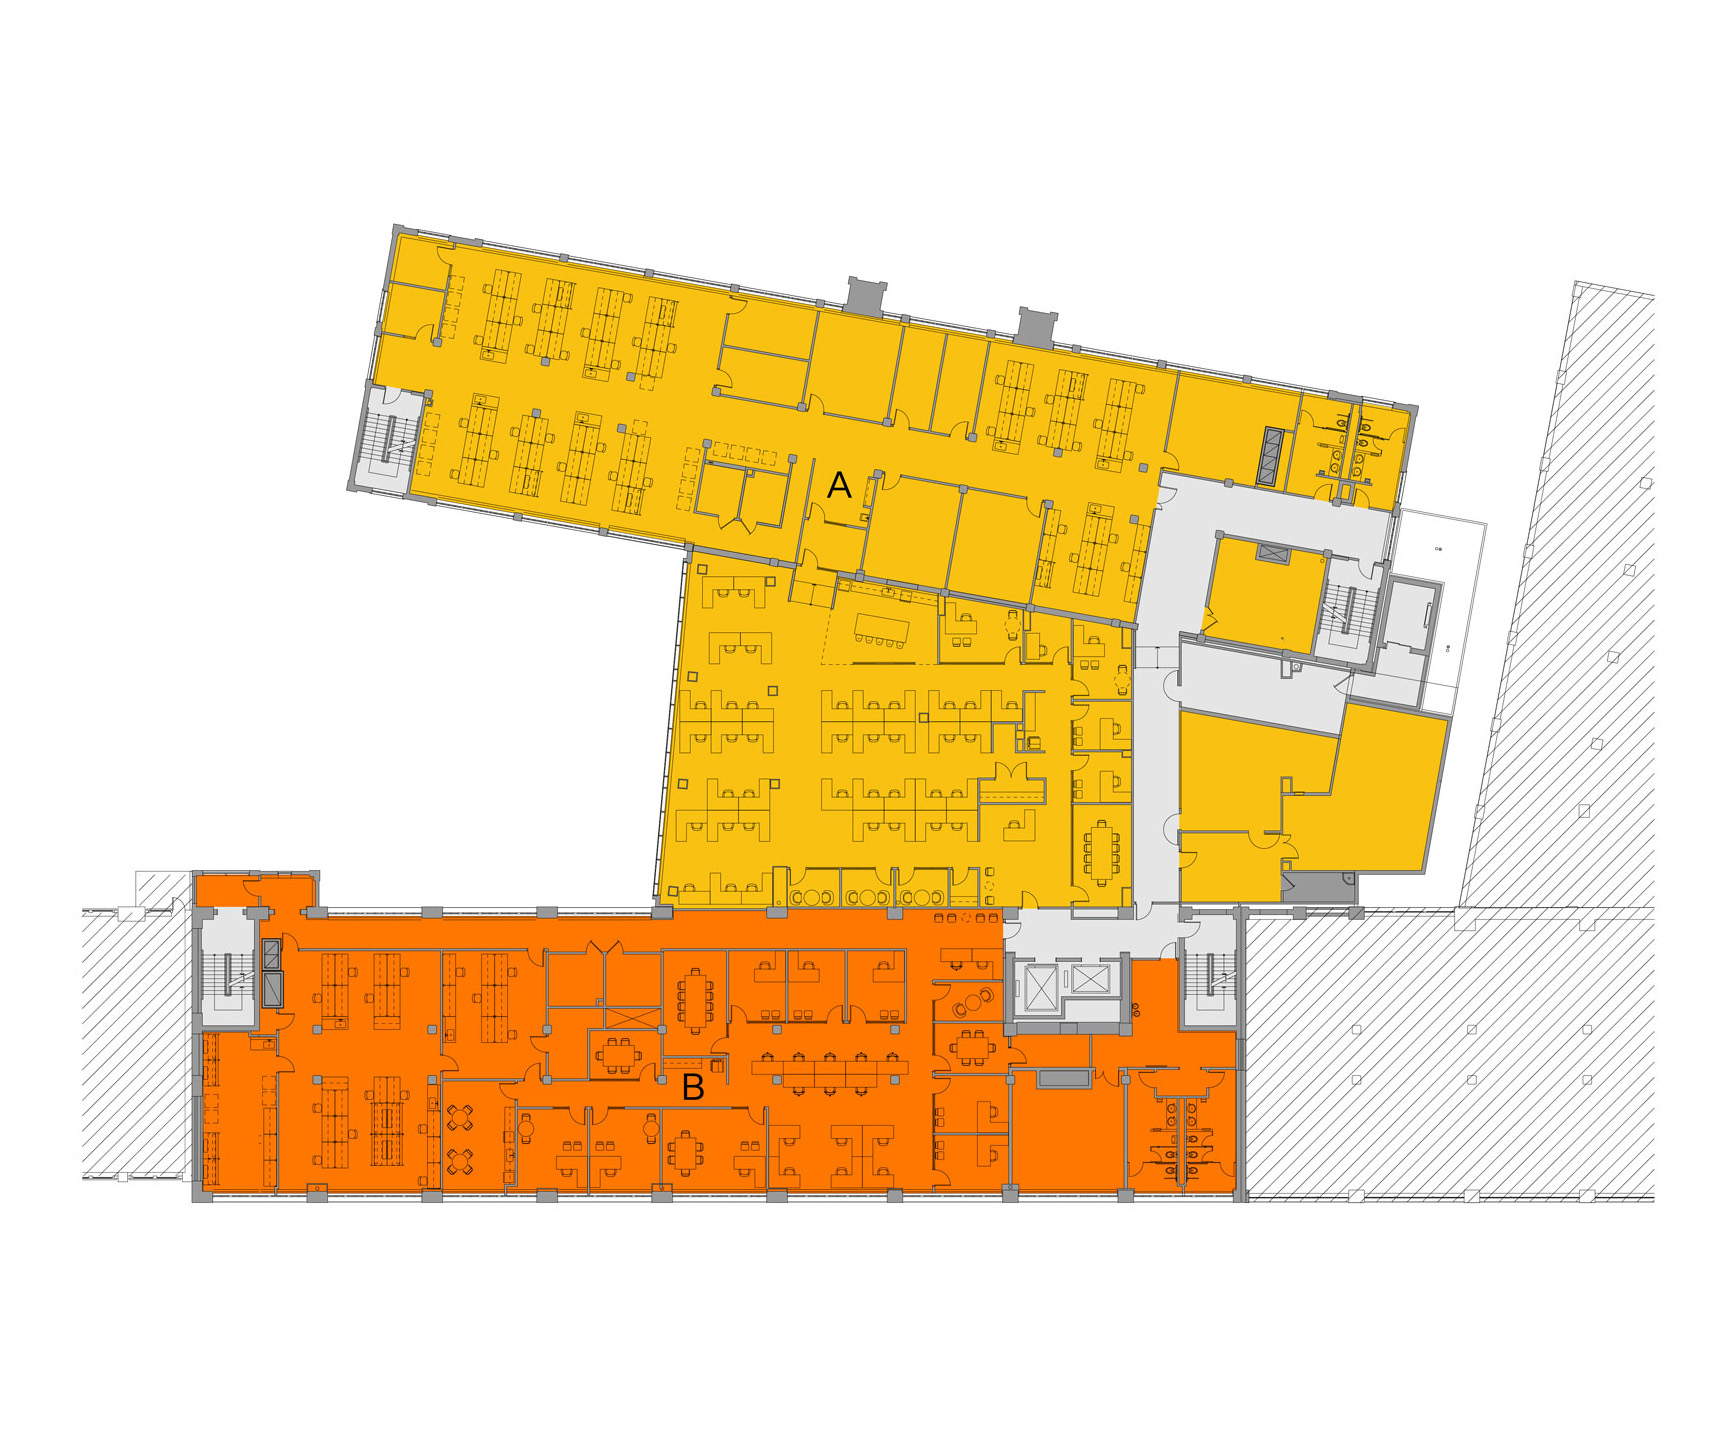 Blueprint layout of Winchester campus level 3